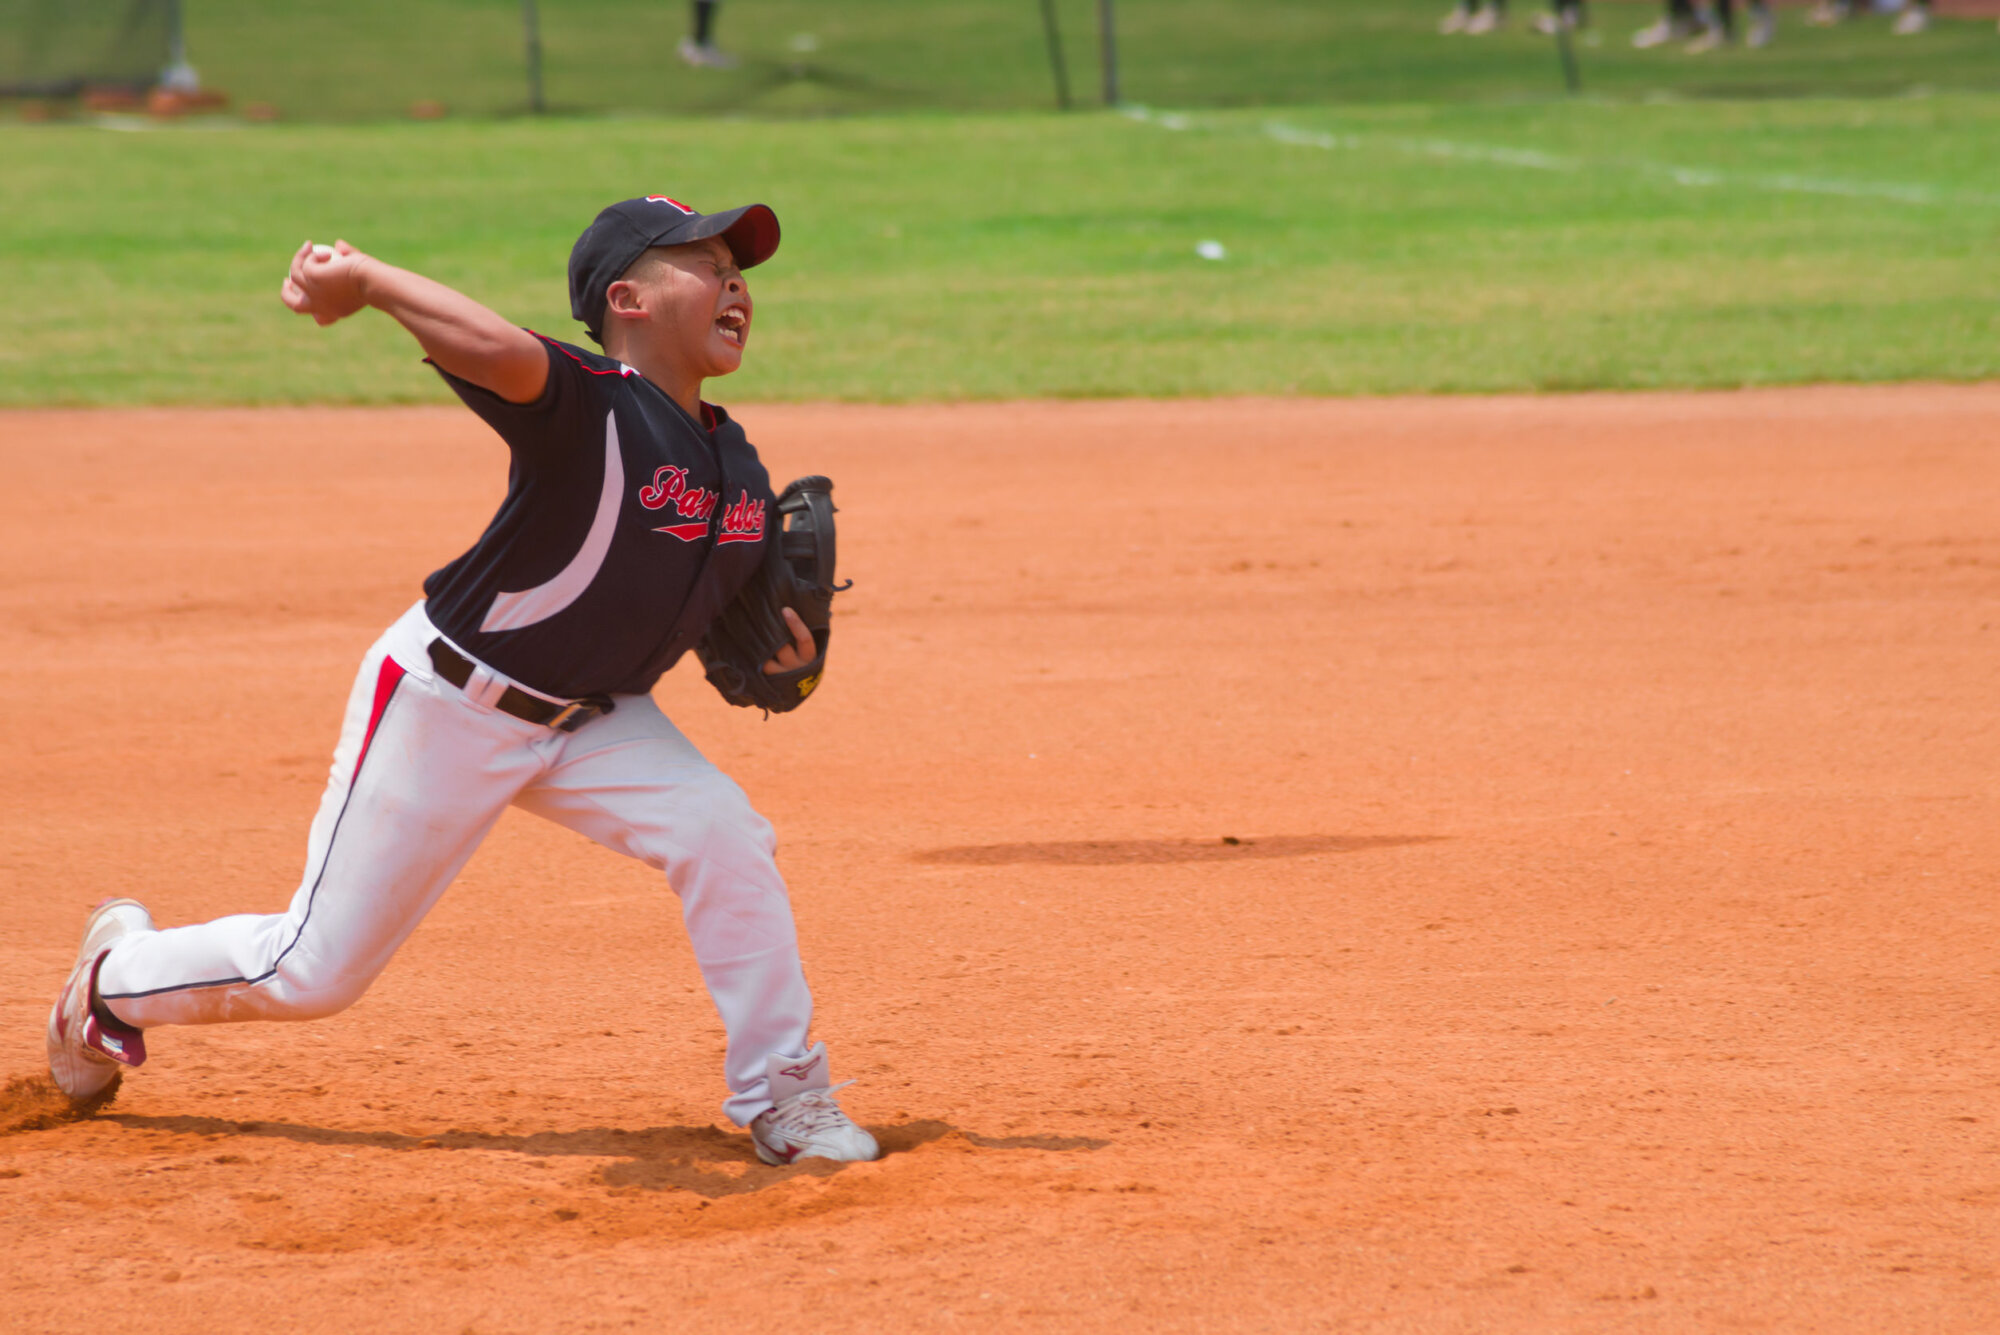 Baseball Pitchers: Injuries Waiting to Happen